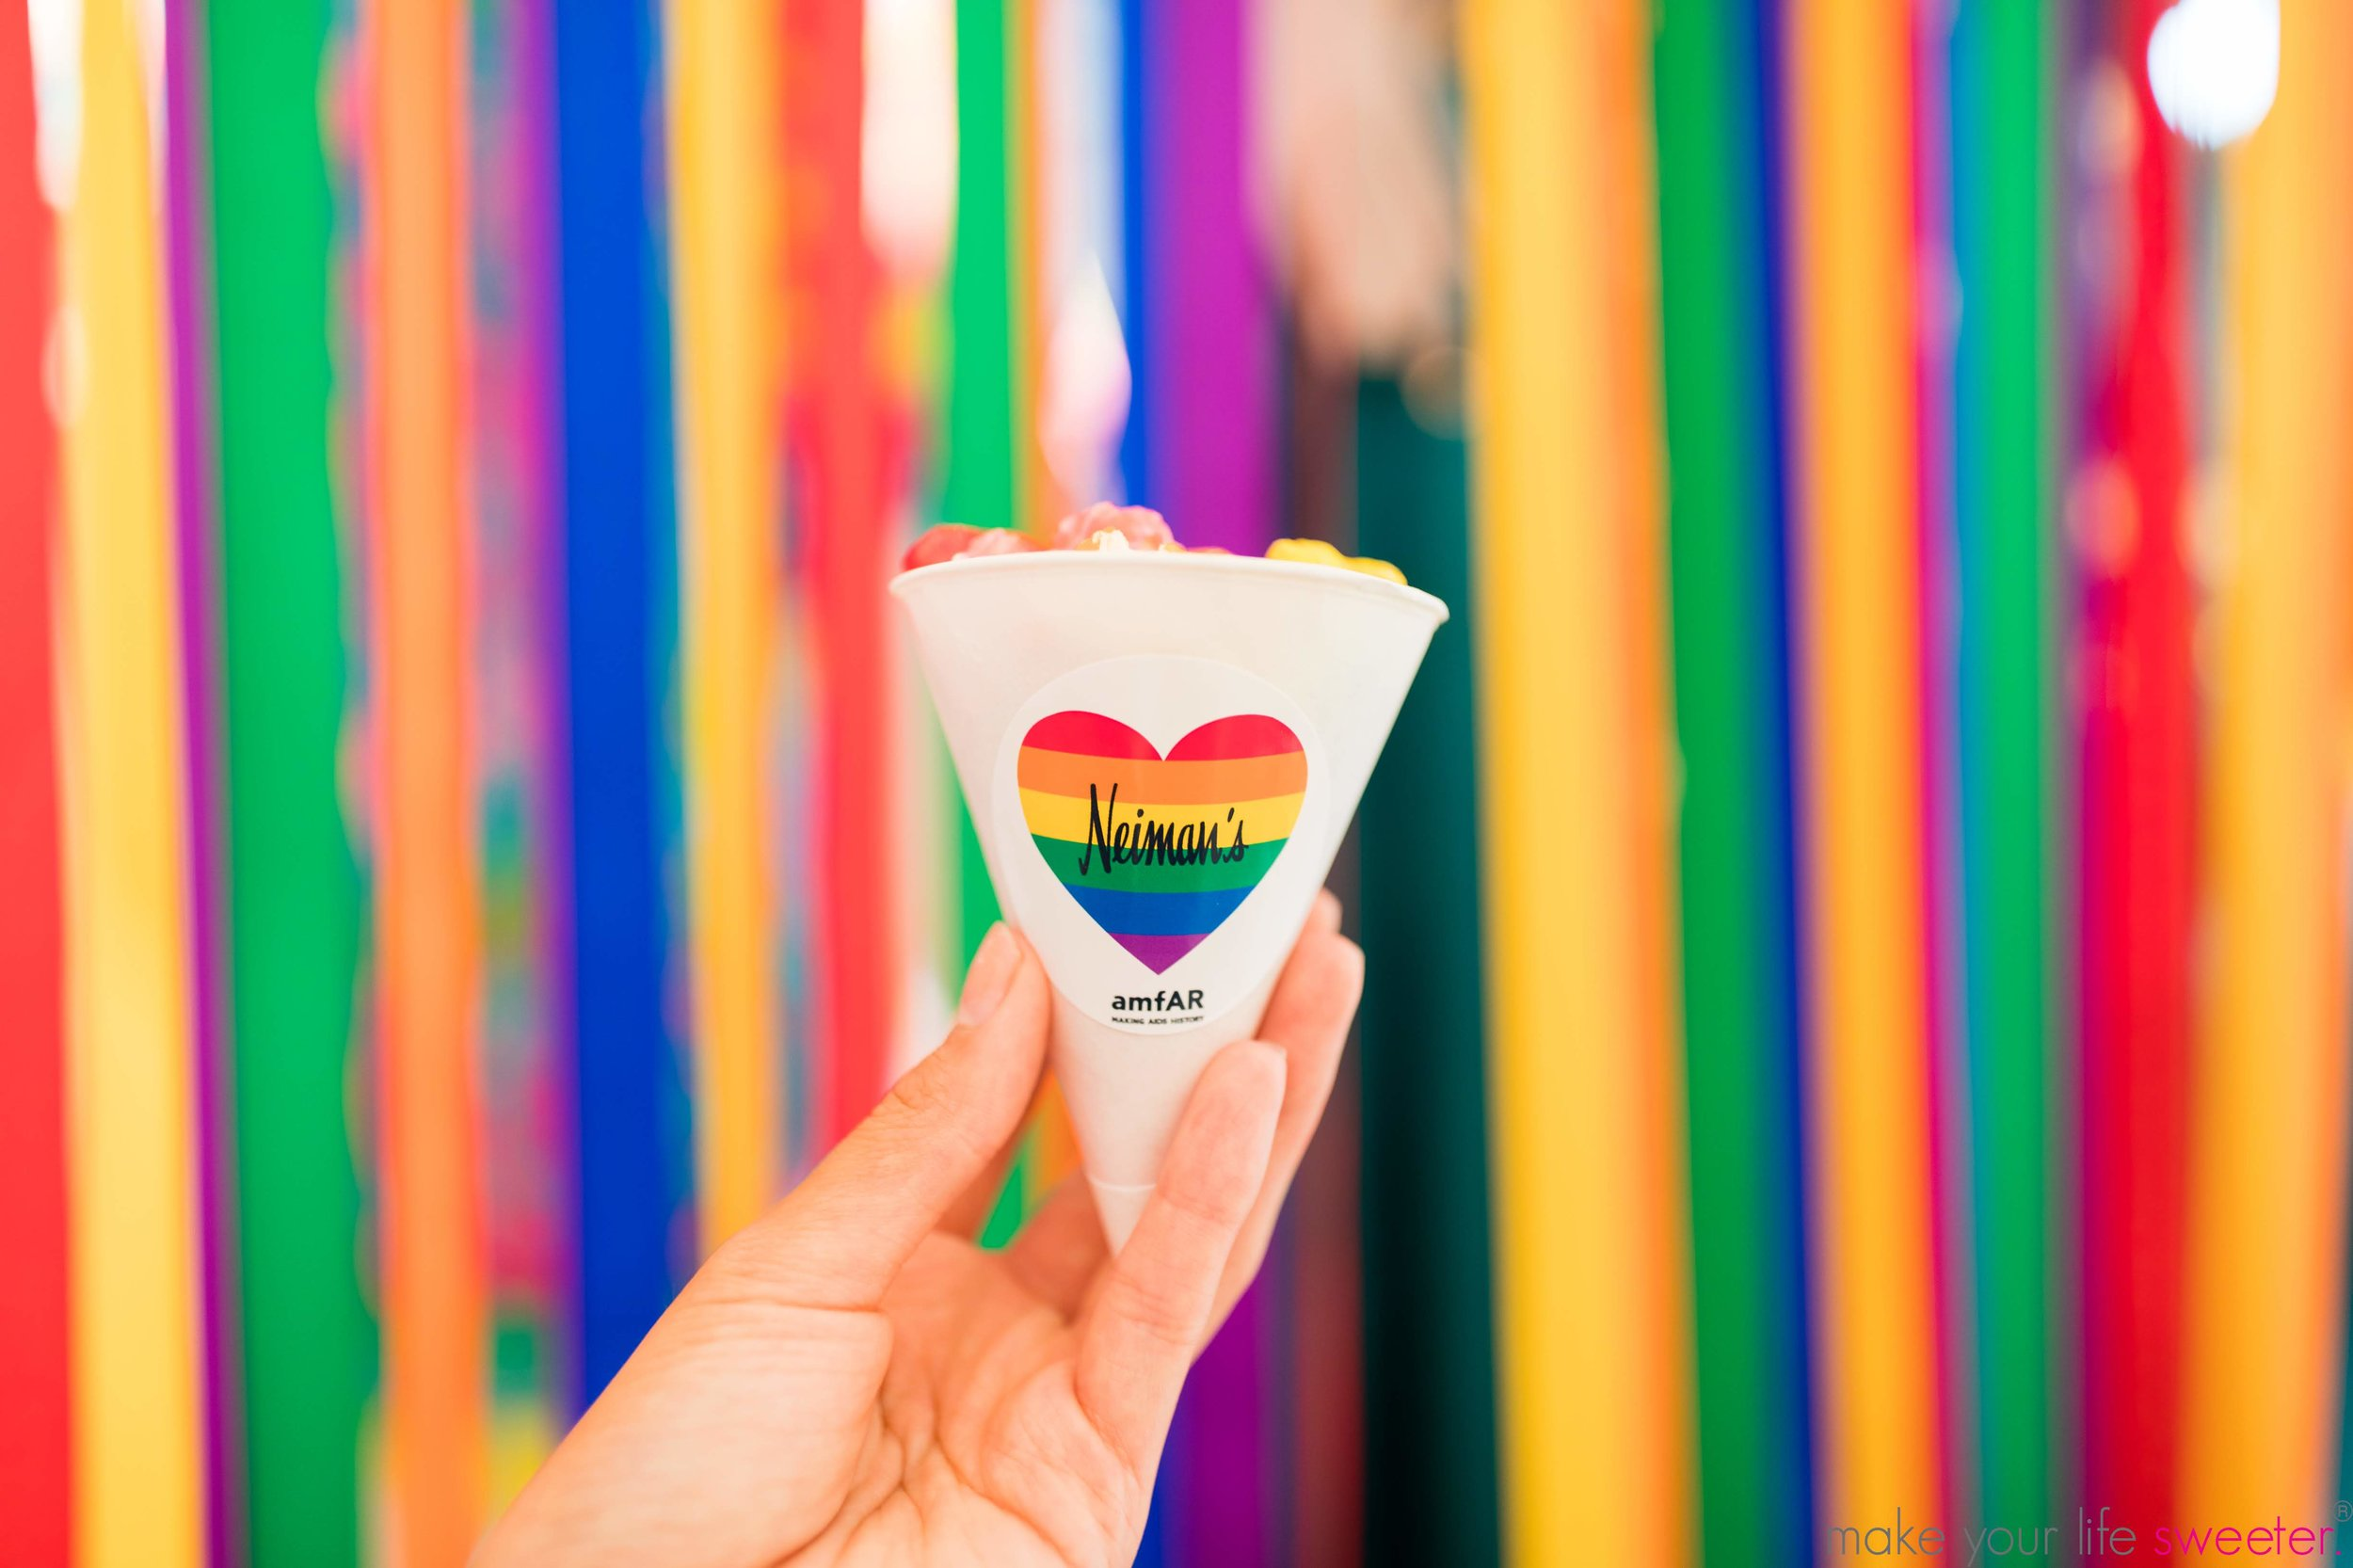 Make Your Life Sweeter Events - Neiman Marcus Hudson Yards Pride Event - Custom Neiman Marcus Labeled Hotpoppin Gourmet Popcorn